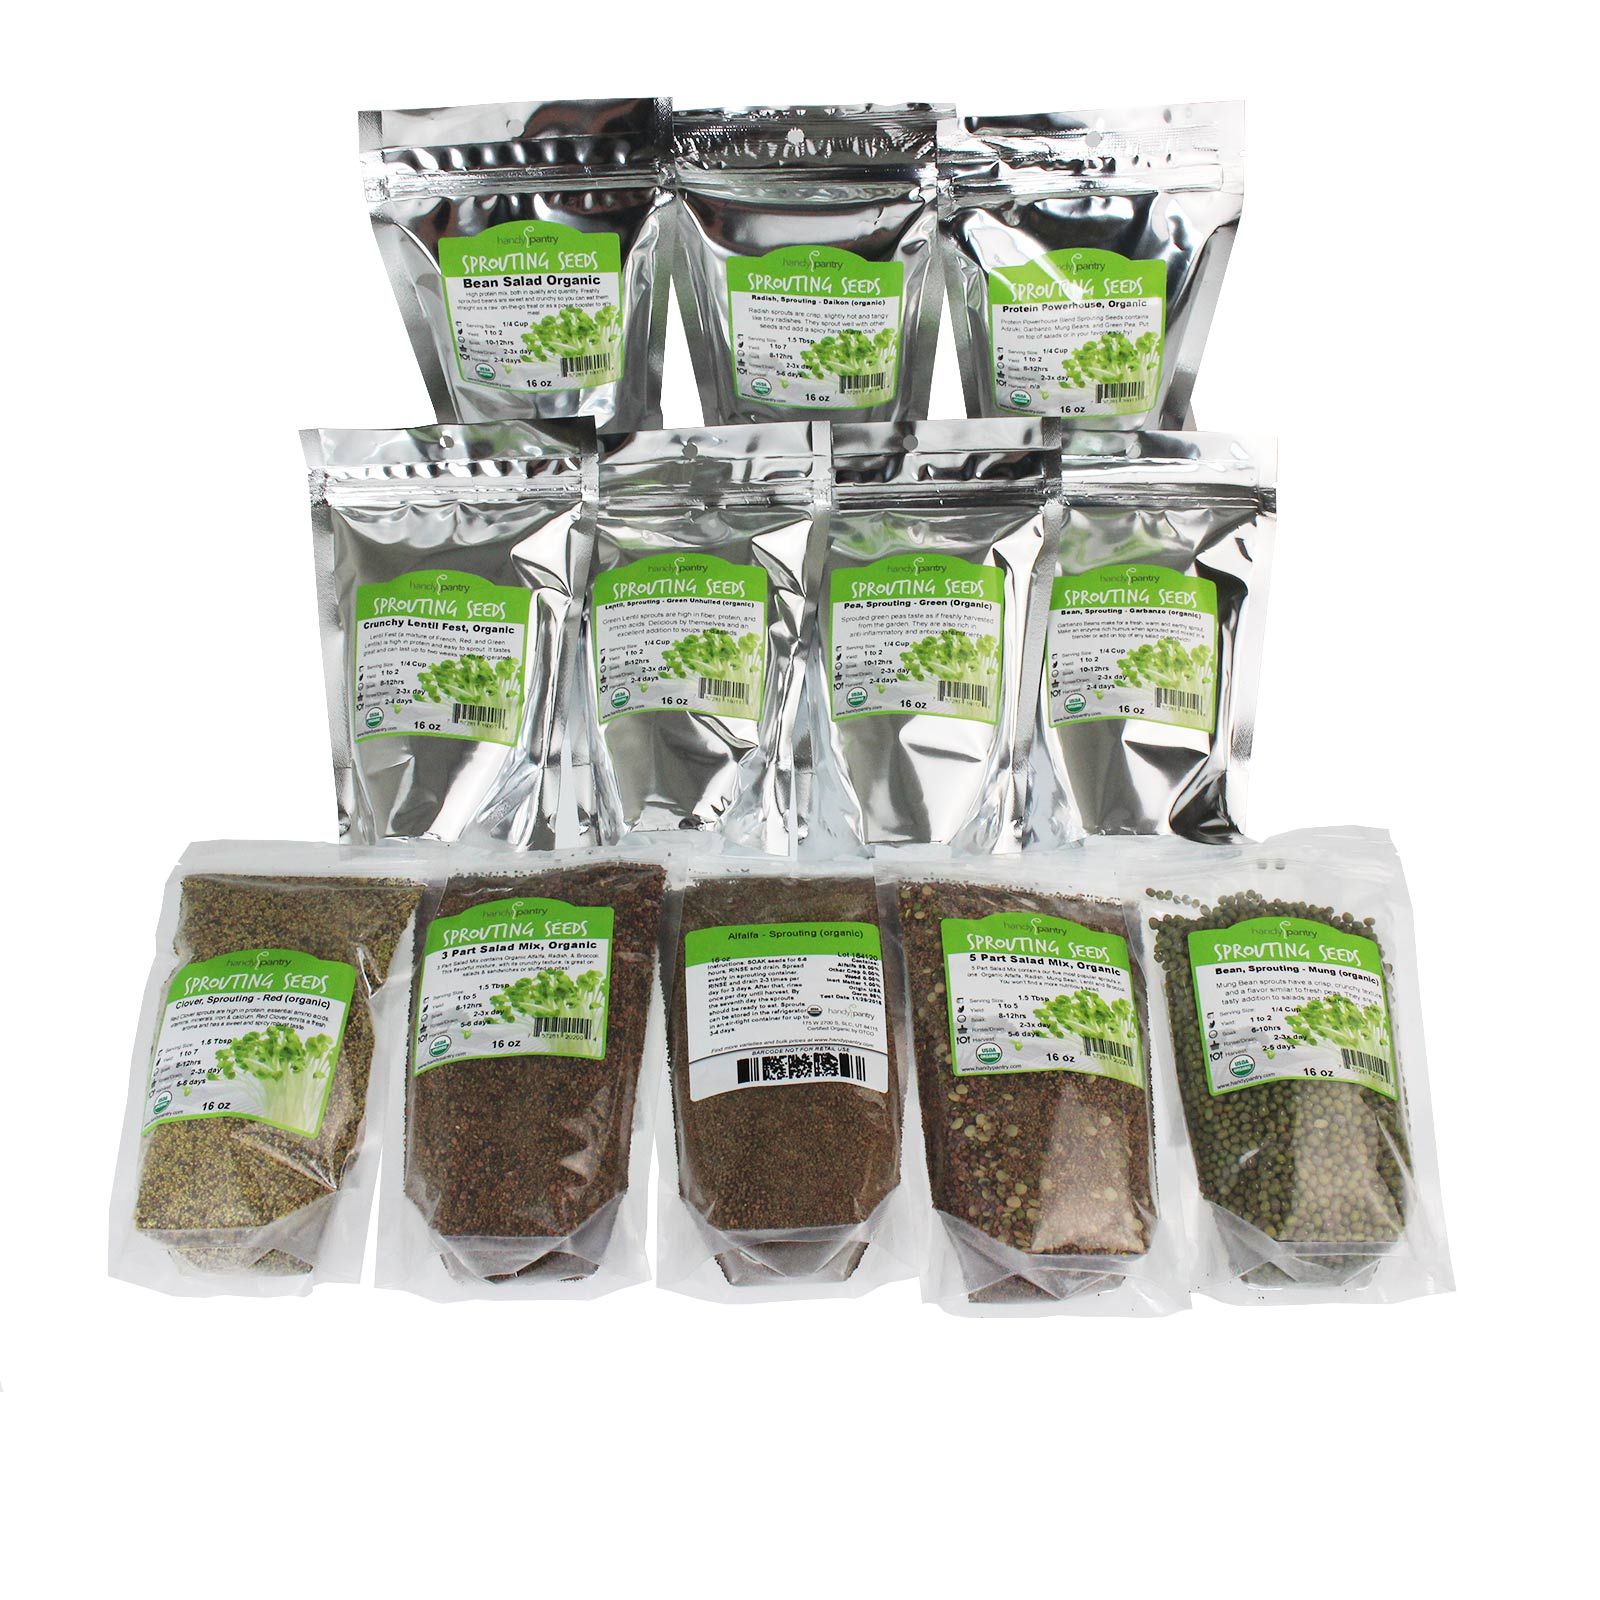 Certified Organic. This sprouting seed assortment includes: Alfalfa, Radish, Clover, Lentil, Mung, Garbanzo, Green Pea, Bean Salad Mix, Protein Powerhouse Mix, Crunchy Lentil Mix, 3 Part Salad Mix & 5 Part Salad Mix. 1 Lb. Of Each Type.